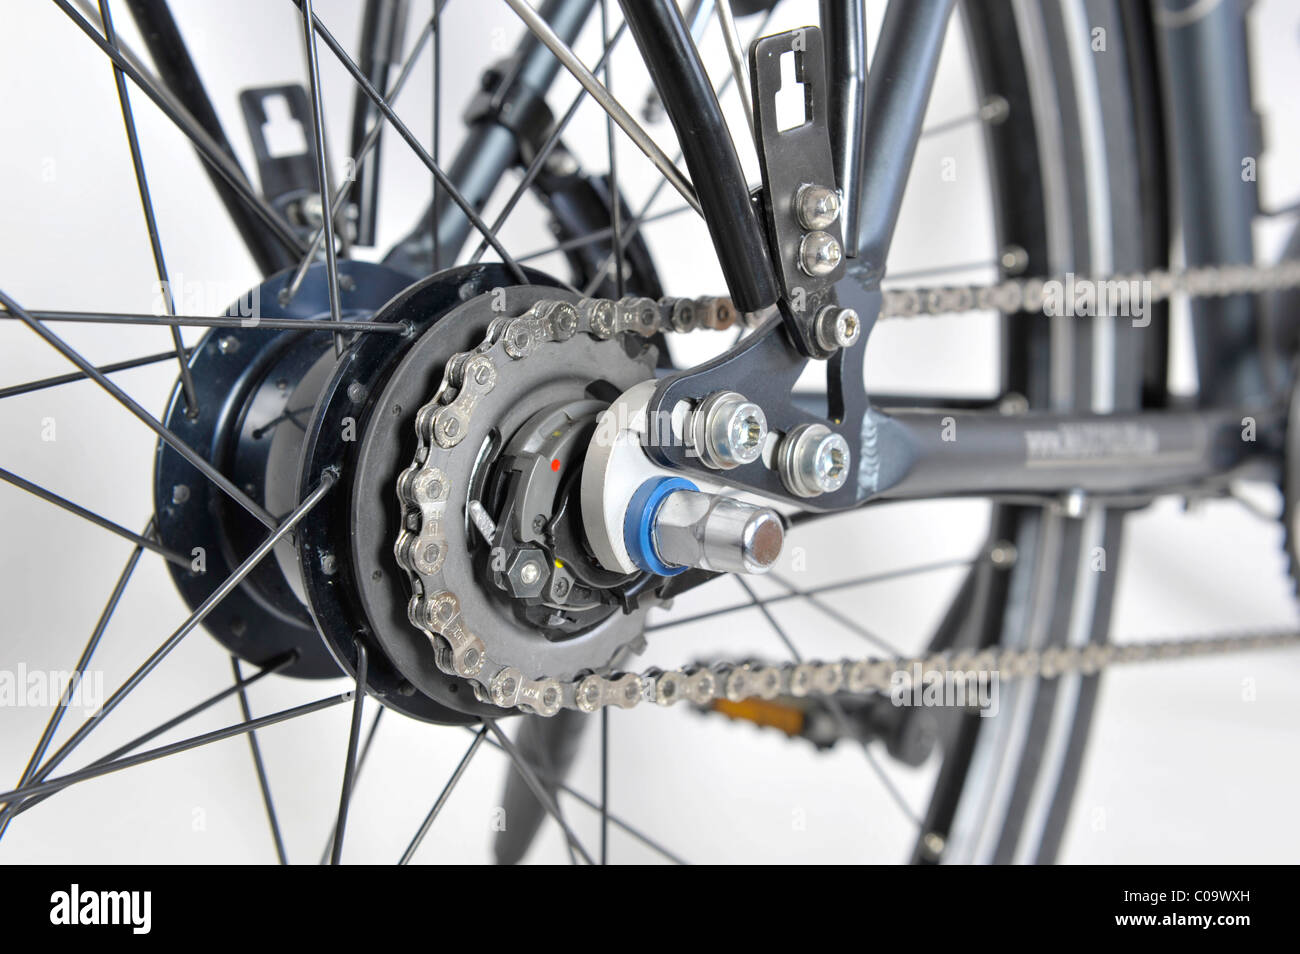 Drive of an 8-speed gear hub of a bicycle - Stock Image